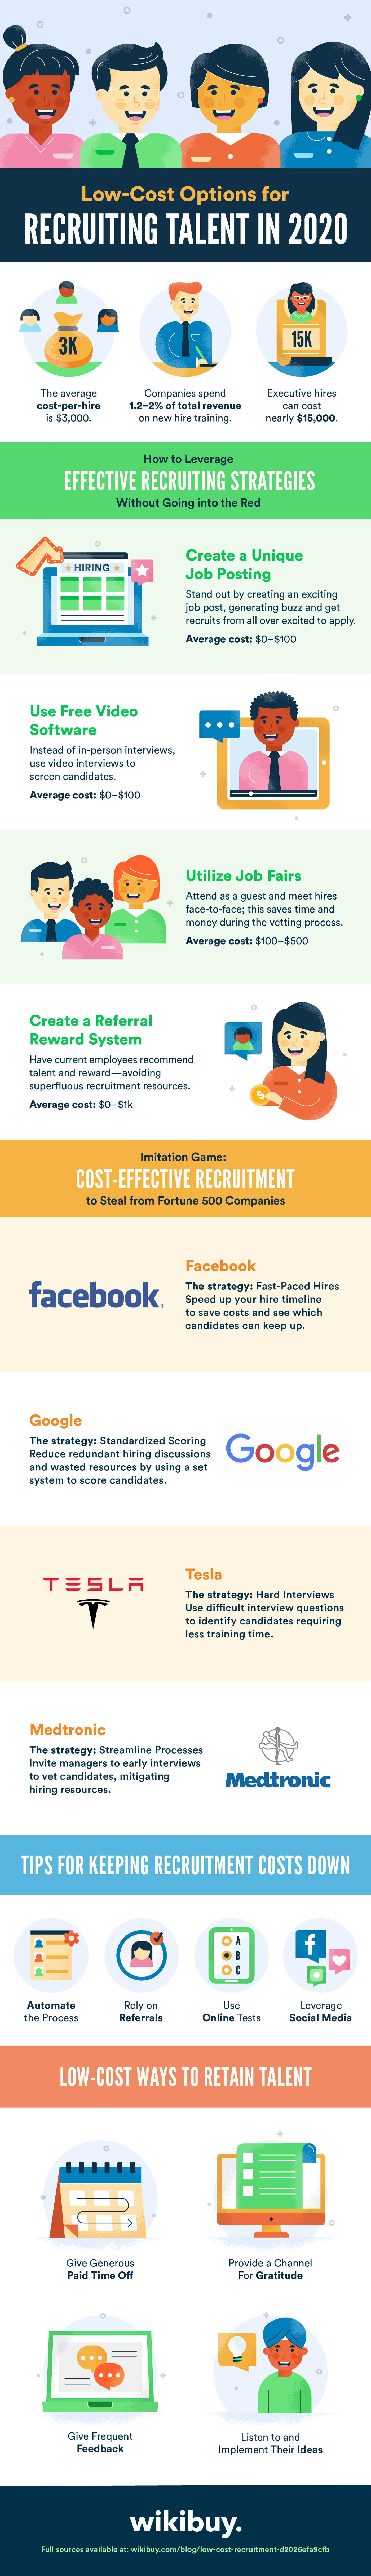 low-cost recruitment tips